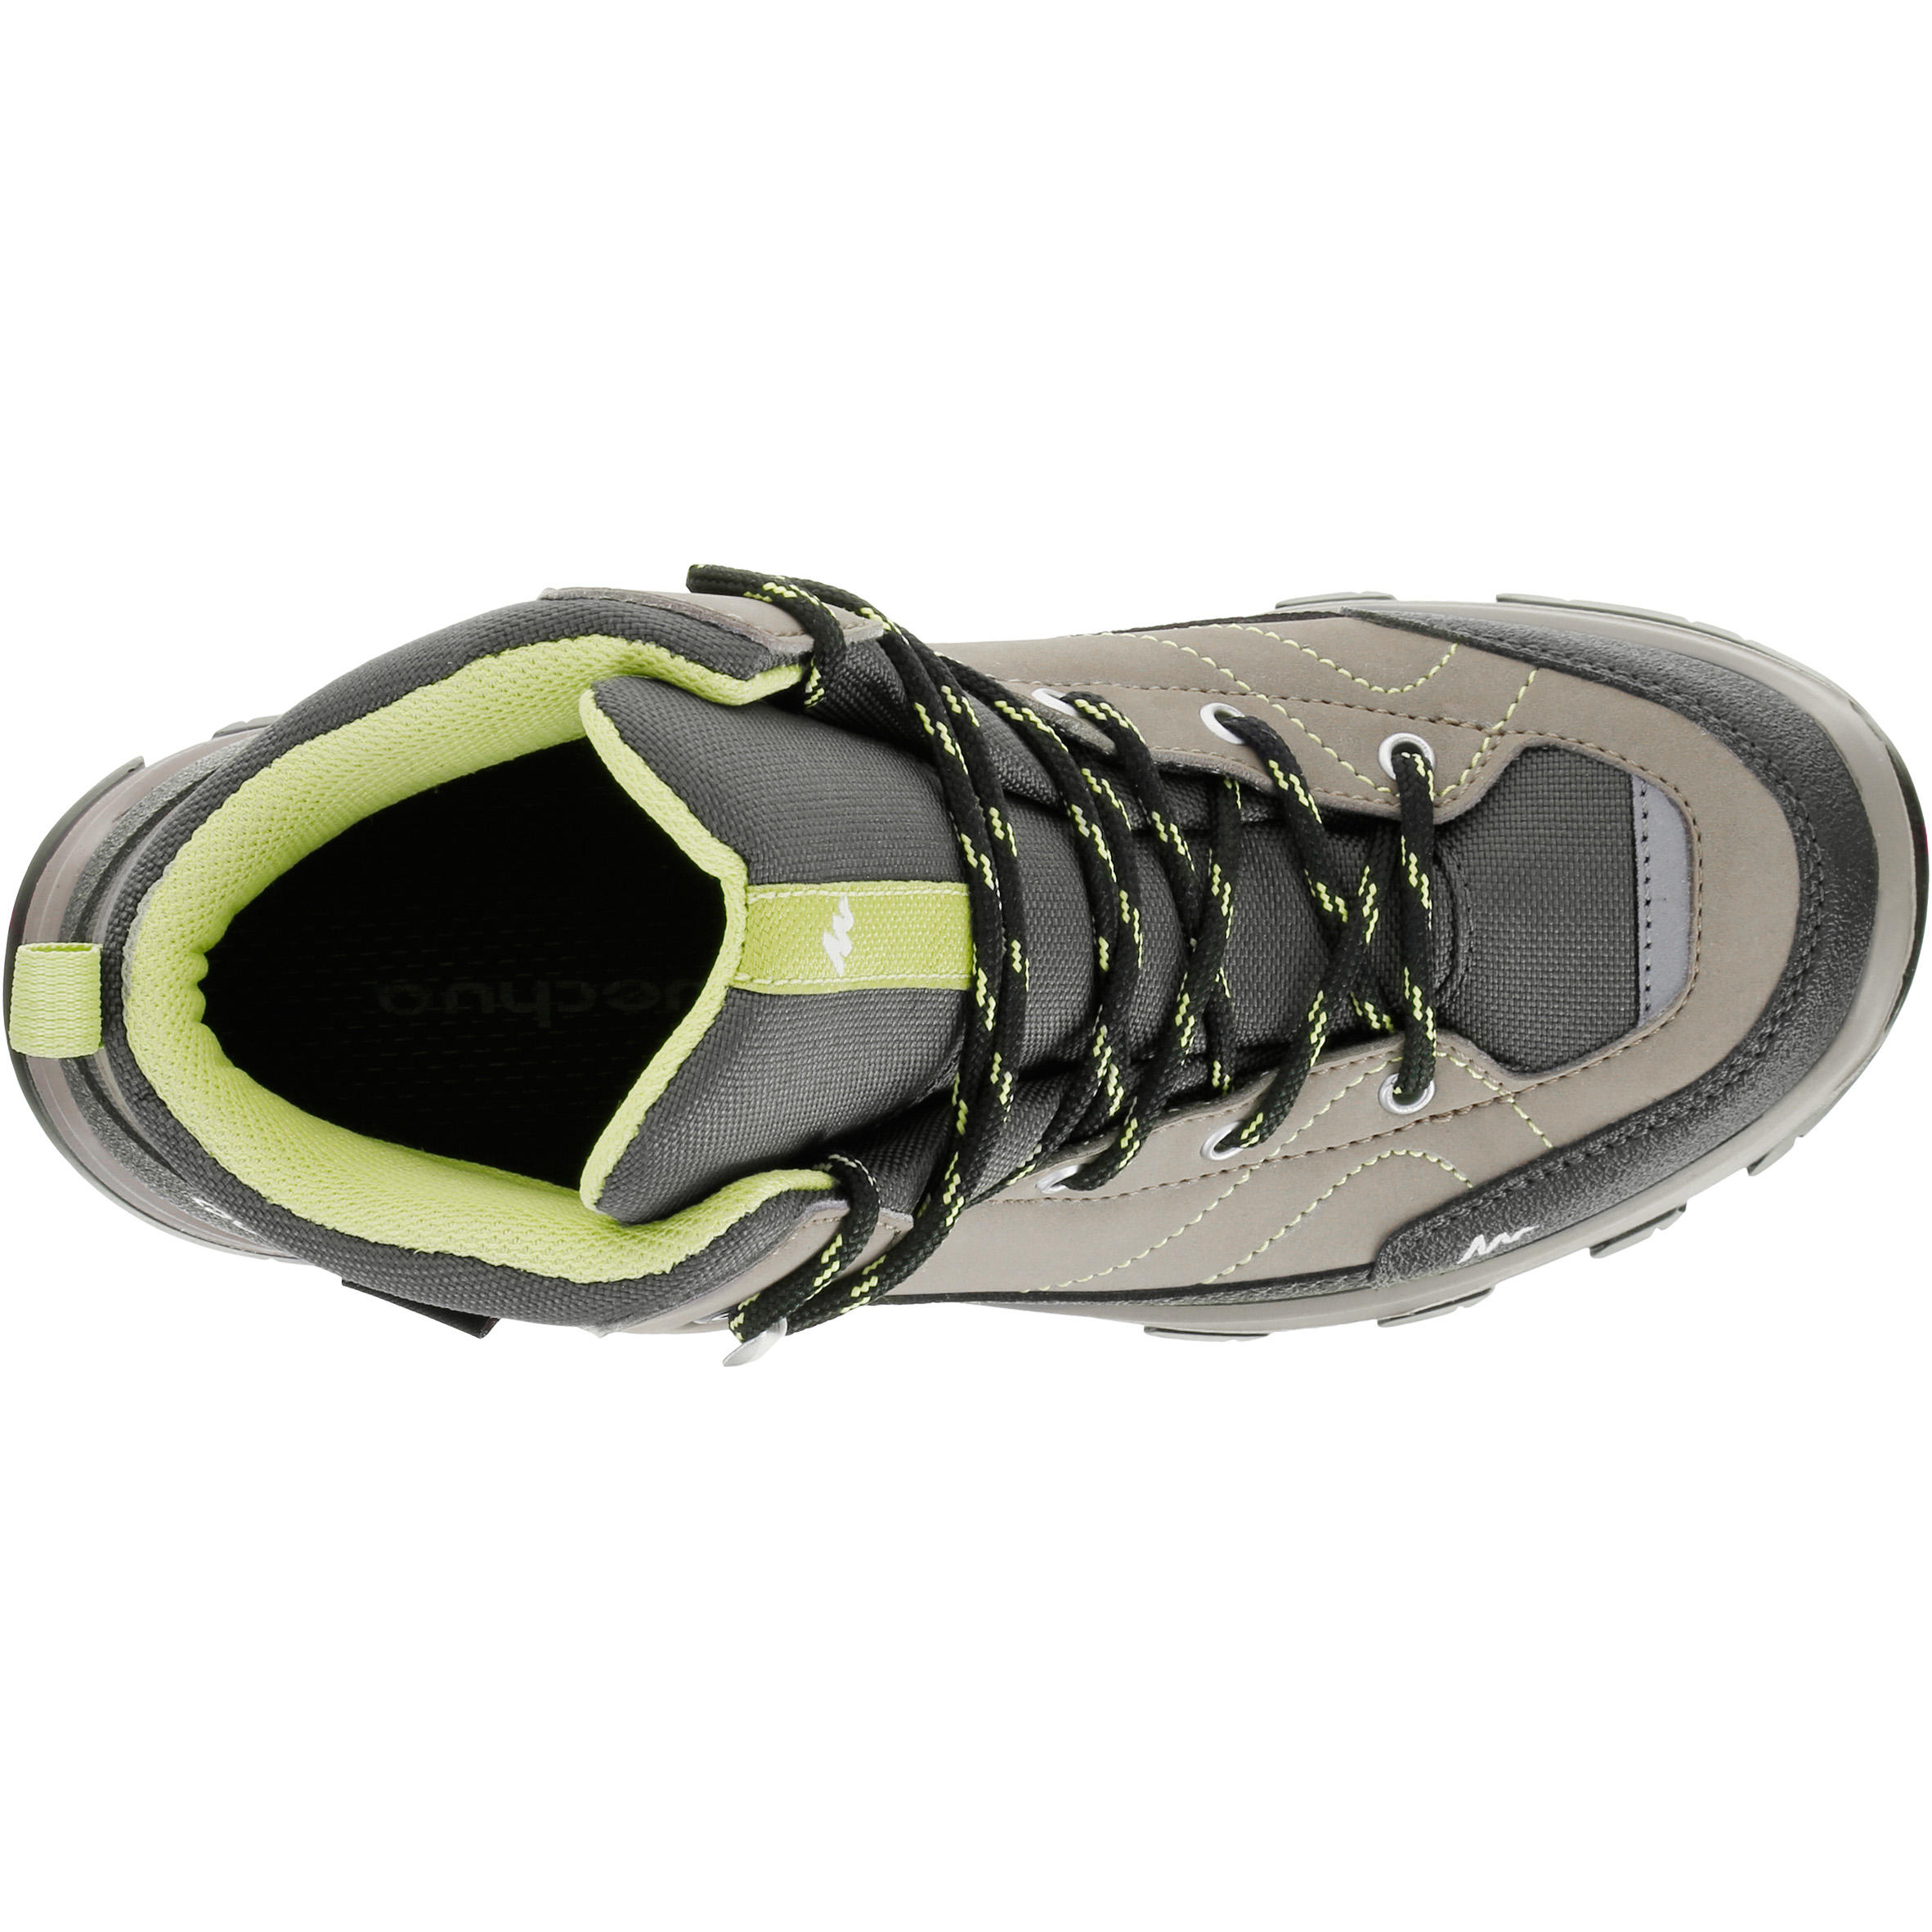 MH500 Mid Children's Waterproof Hiking Shoes - Brown